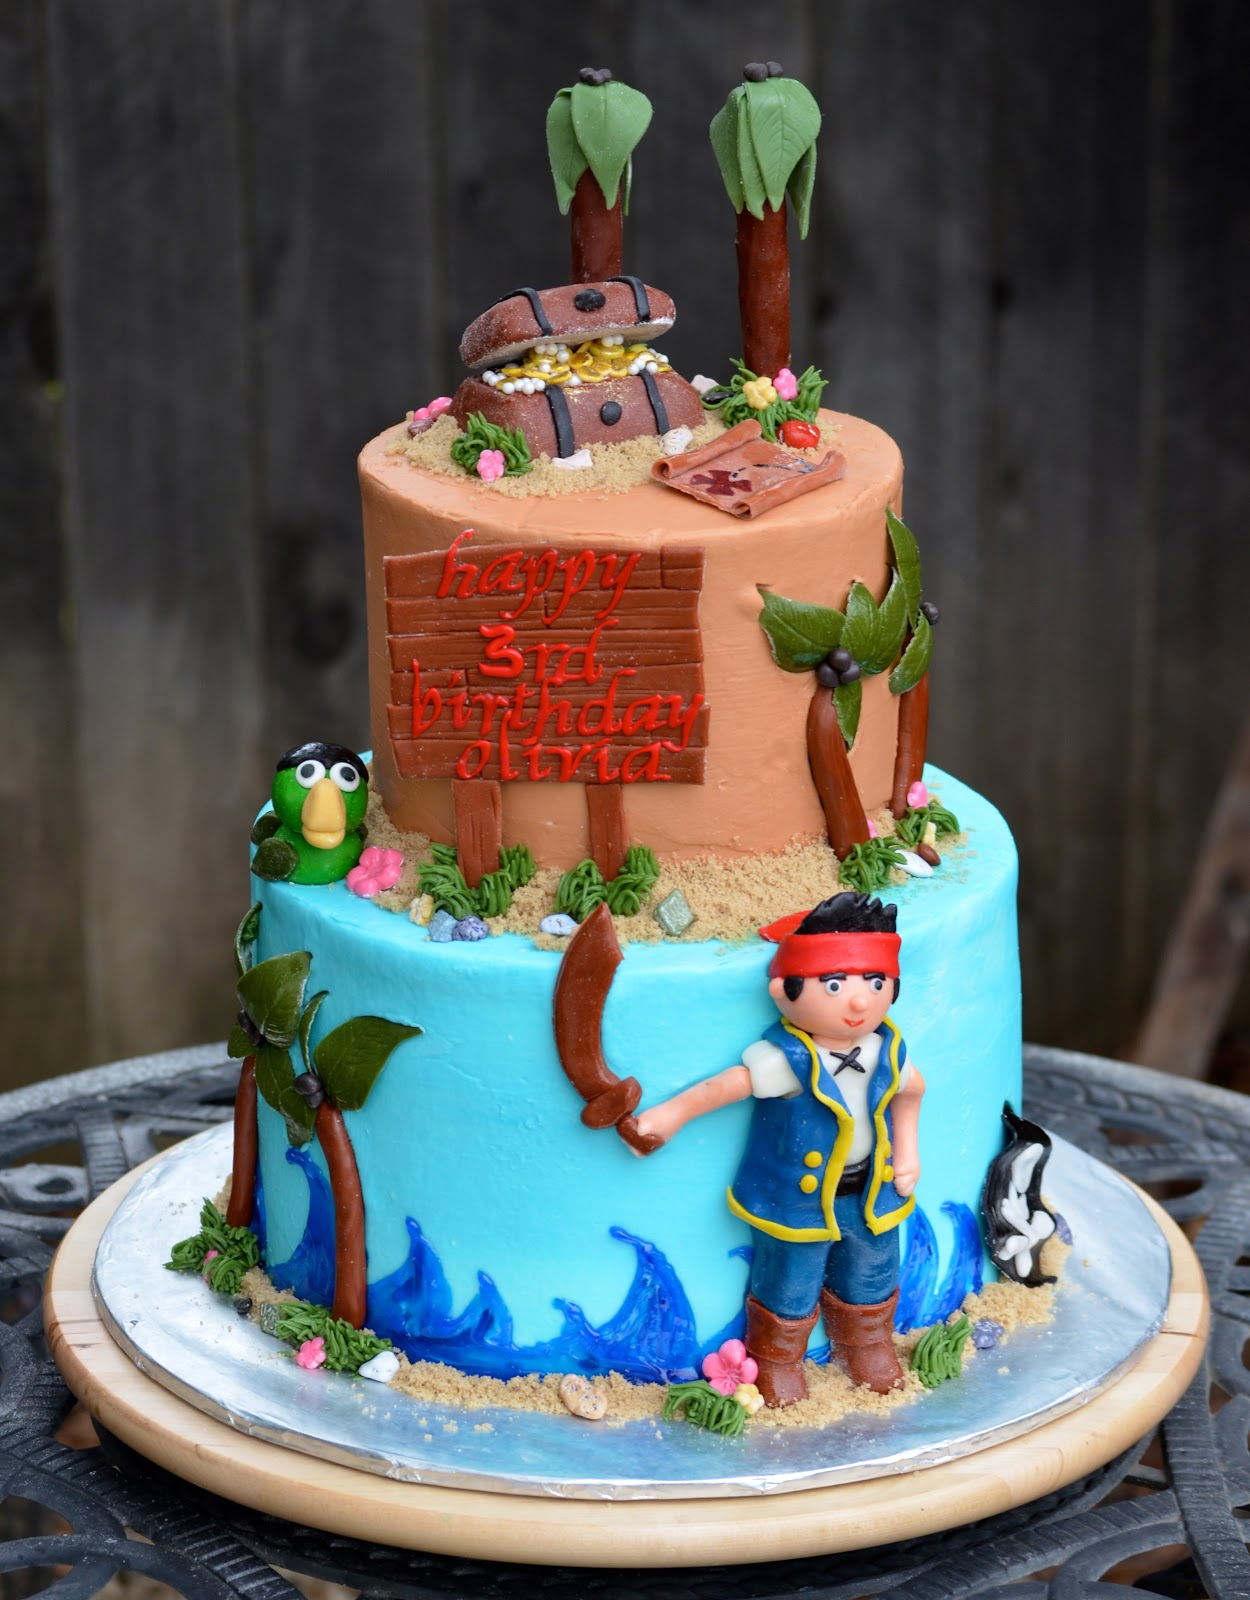 jake and the neverland pirates tiered cake - photo #3